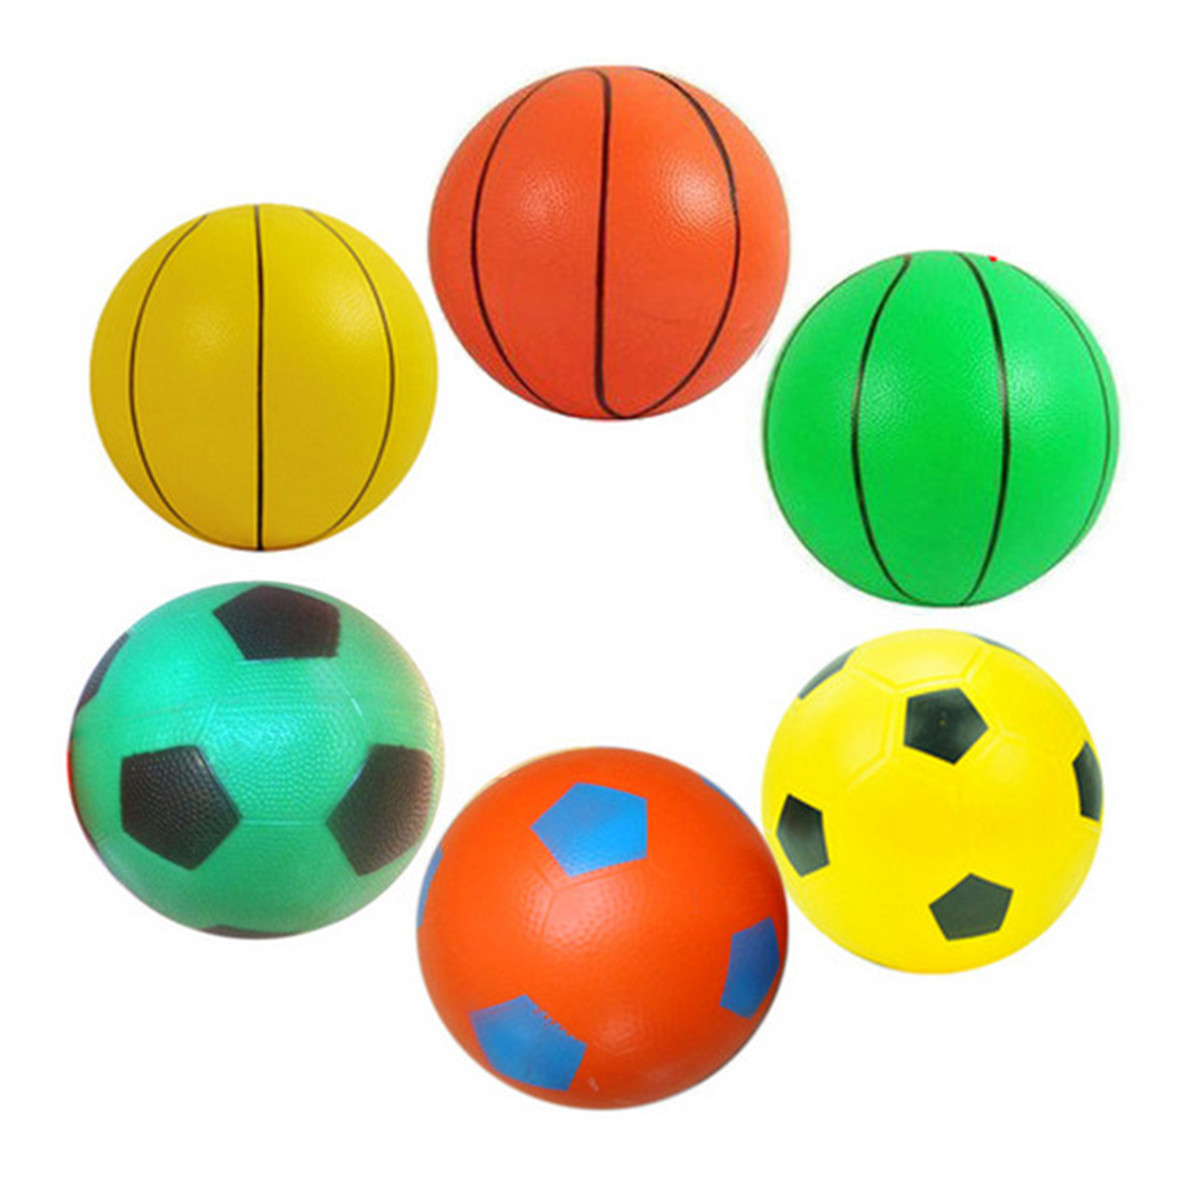 8-12cm Inflatable Football Basketball Beach Swimming Pool Soccer Ball Holiday Party Game Kids Toy Gift For Children(China (Mainland))